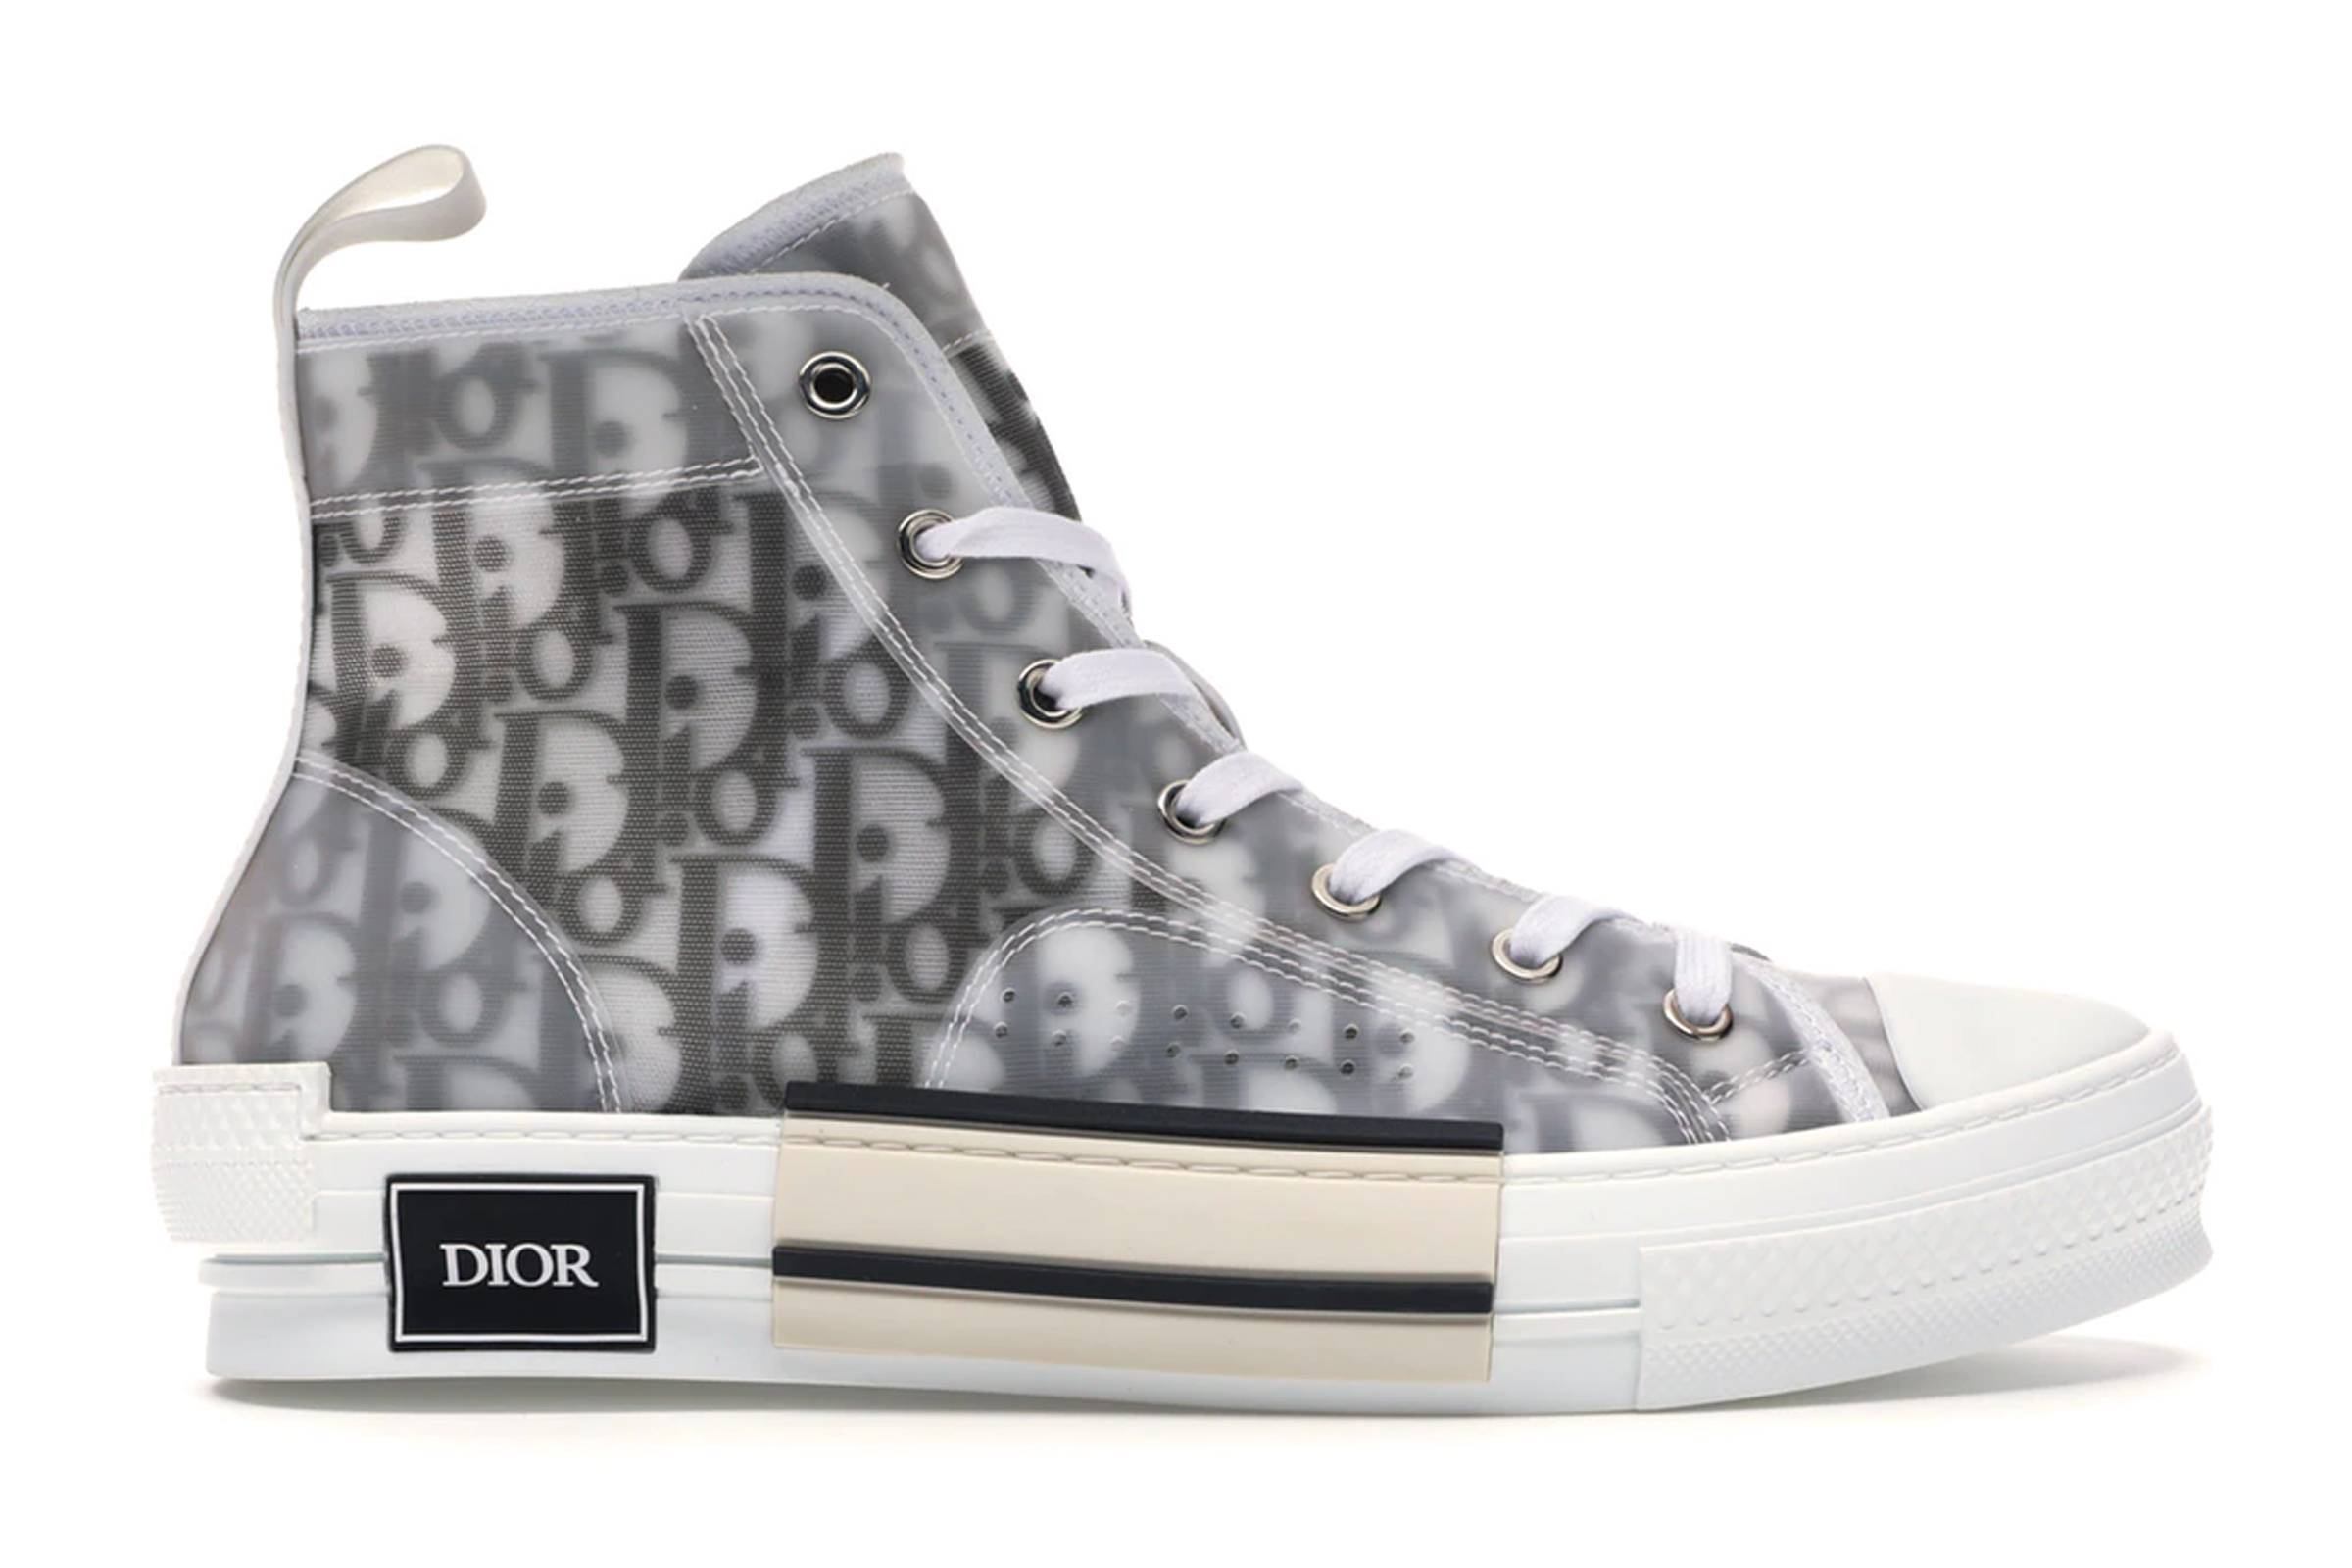 Dior B23 High Top Oblique Sneaker